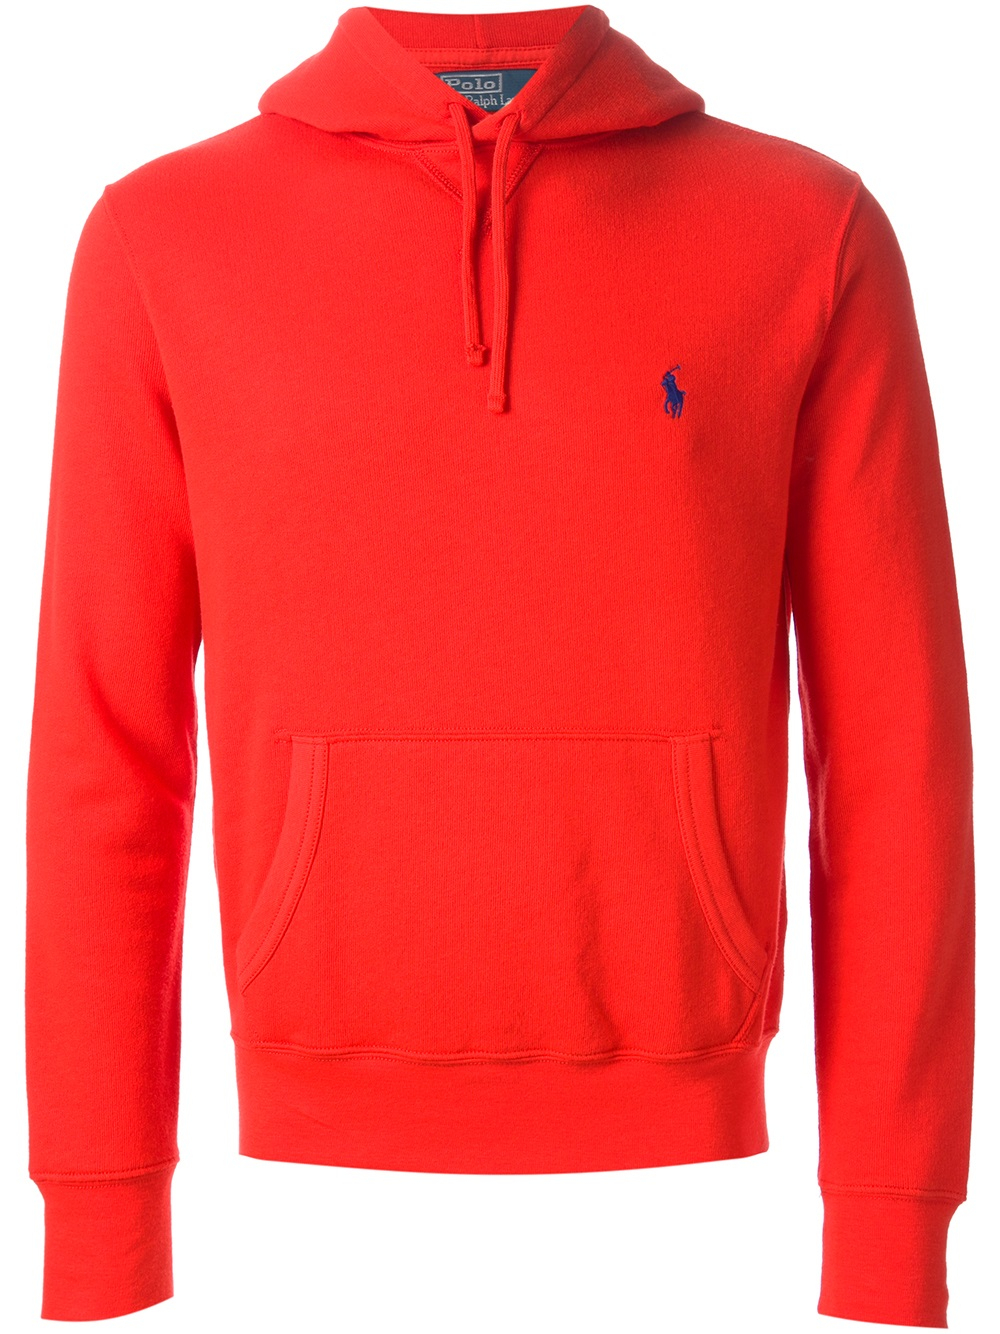 polo ralph lauren classic hoodie in red for men lyst. Black Bedroom Furniture Sets. Home Design Ideas